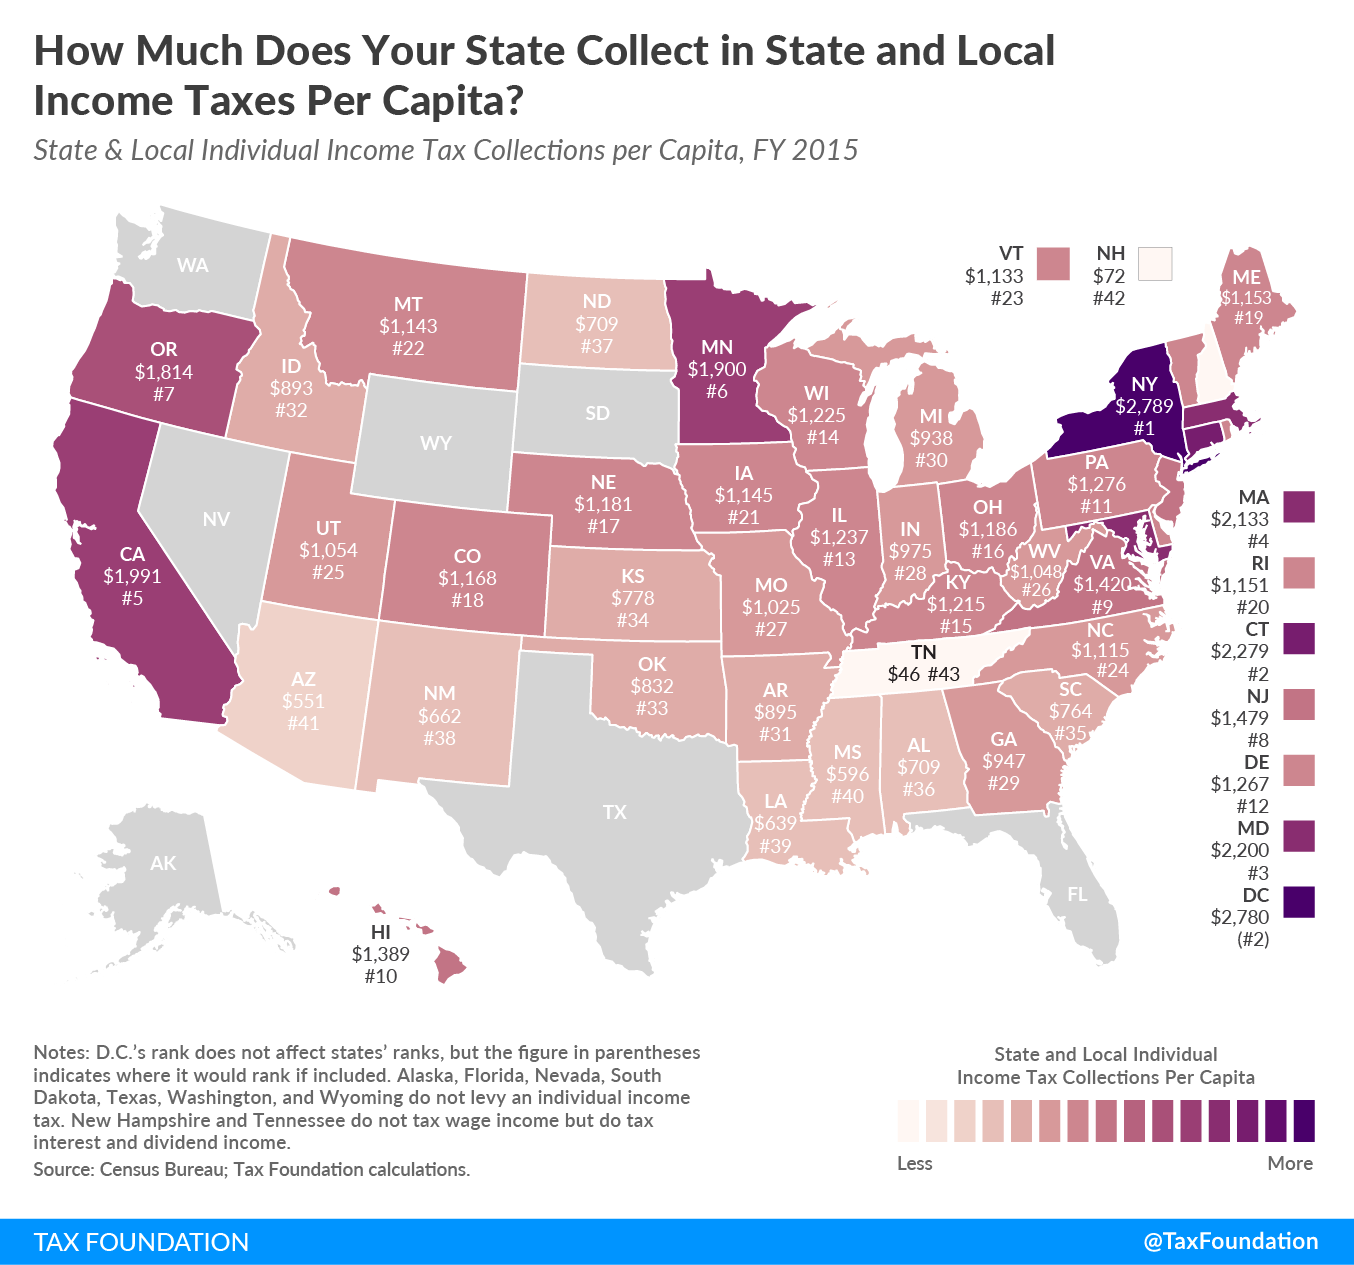 State and Local Individual Income Tax Collections Per Capita State Rankings